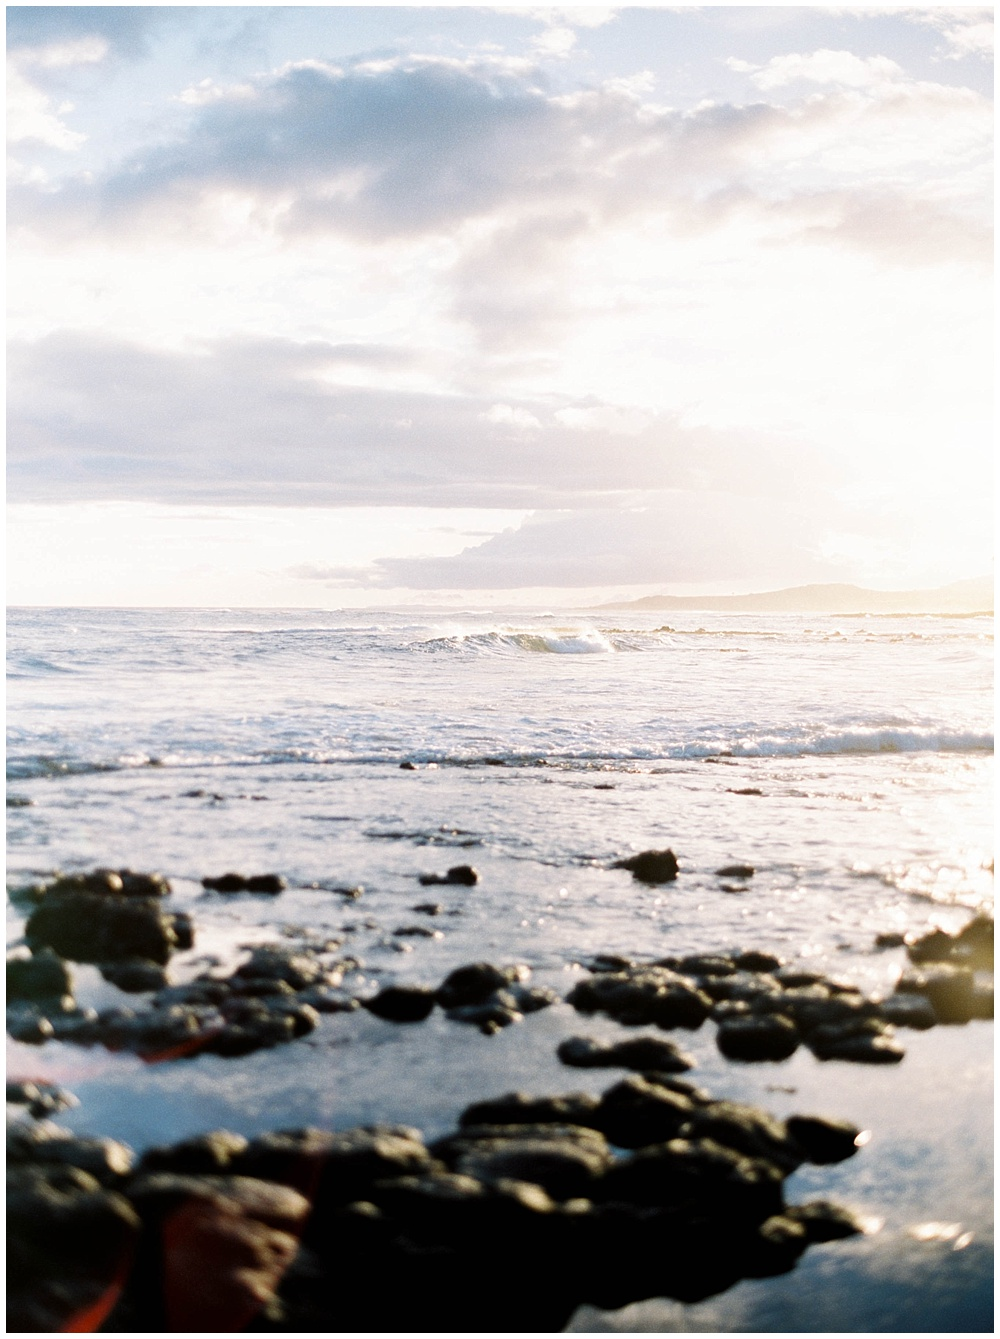 Fine Art Film Wedding Photographer | Sarah Carpenter Travel Photography | Hawaii & Destinations Worldwide